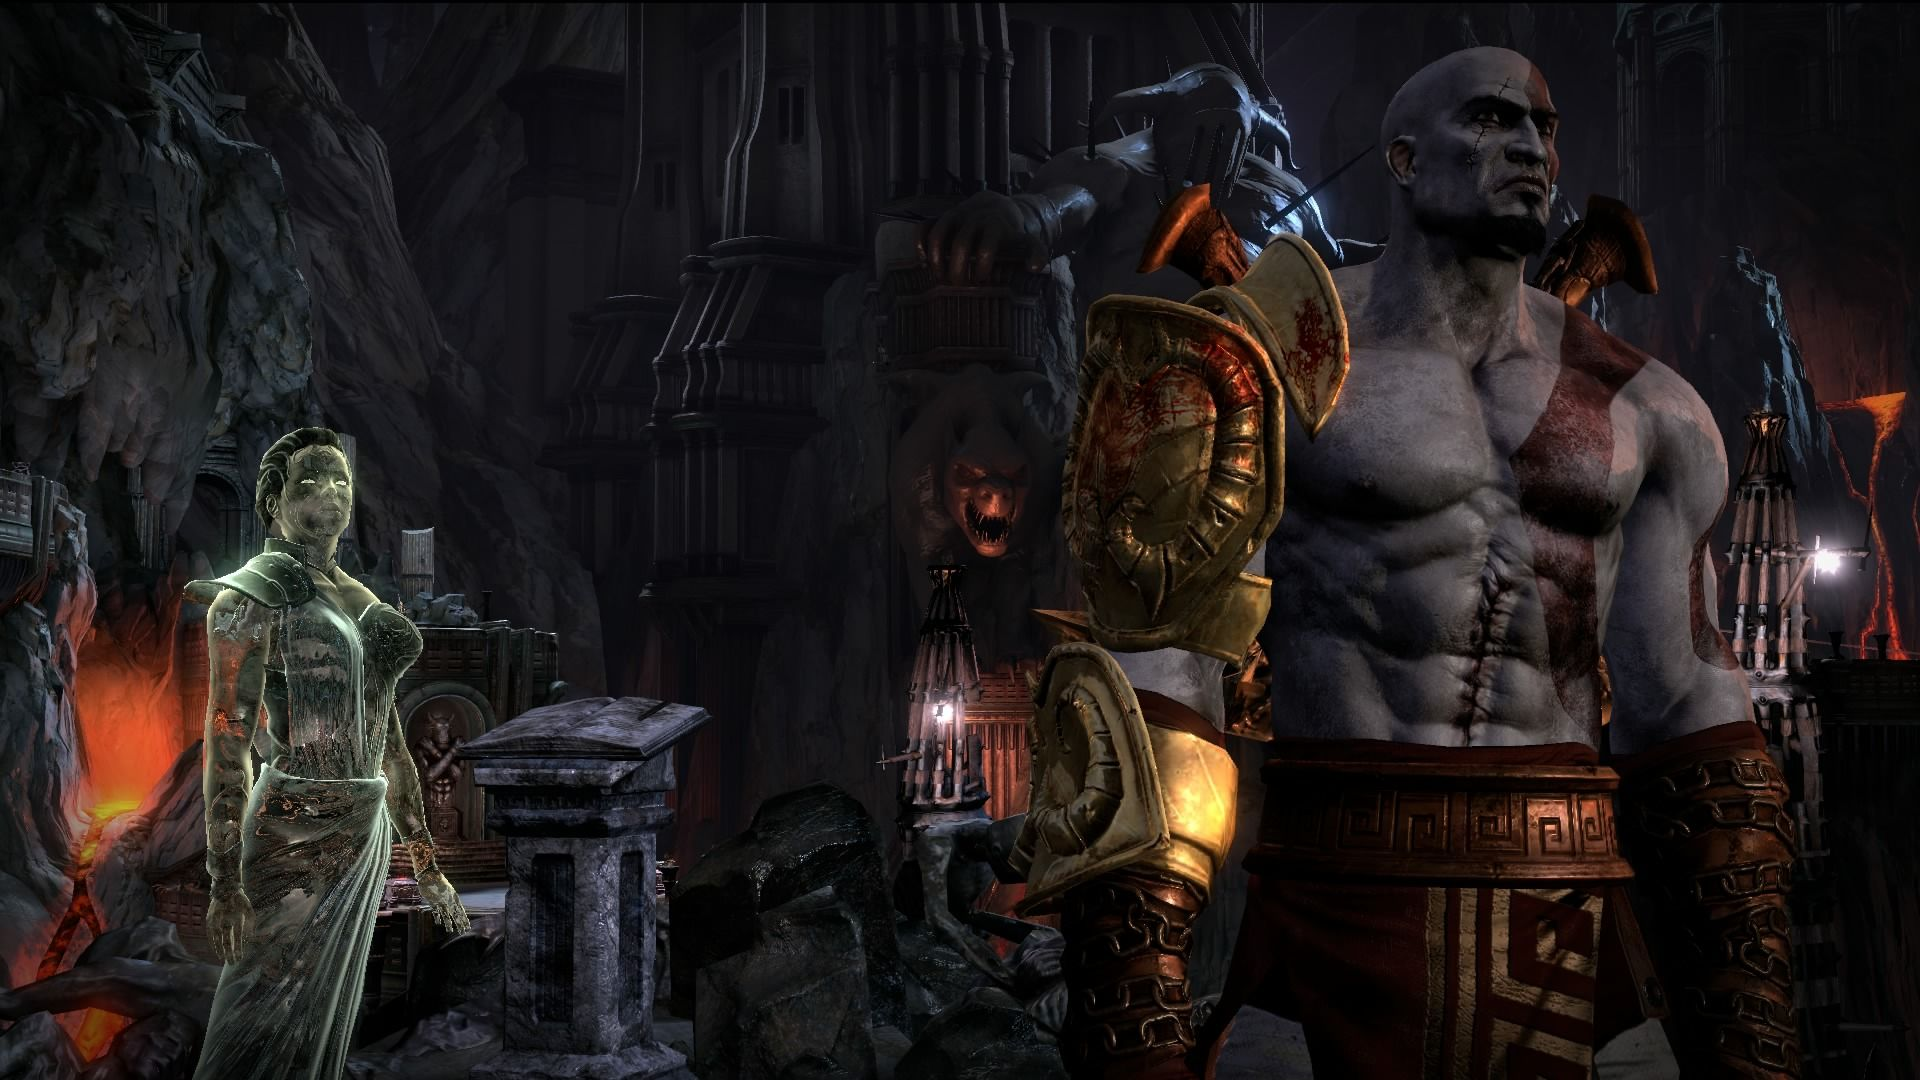 Скриншот *God of War III Remastered [PS4 Exclusive] 5.05 / 6.72 / 7.02 [EUR] (2015) [Русский] (v1.01)*